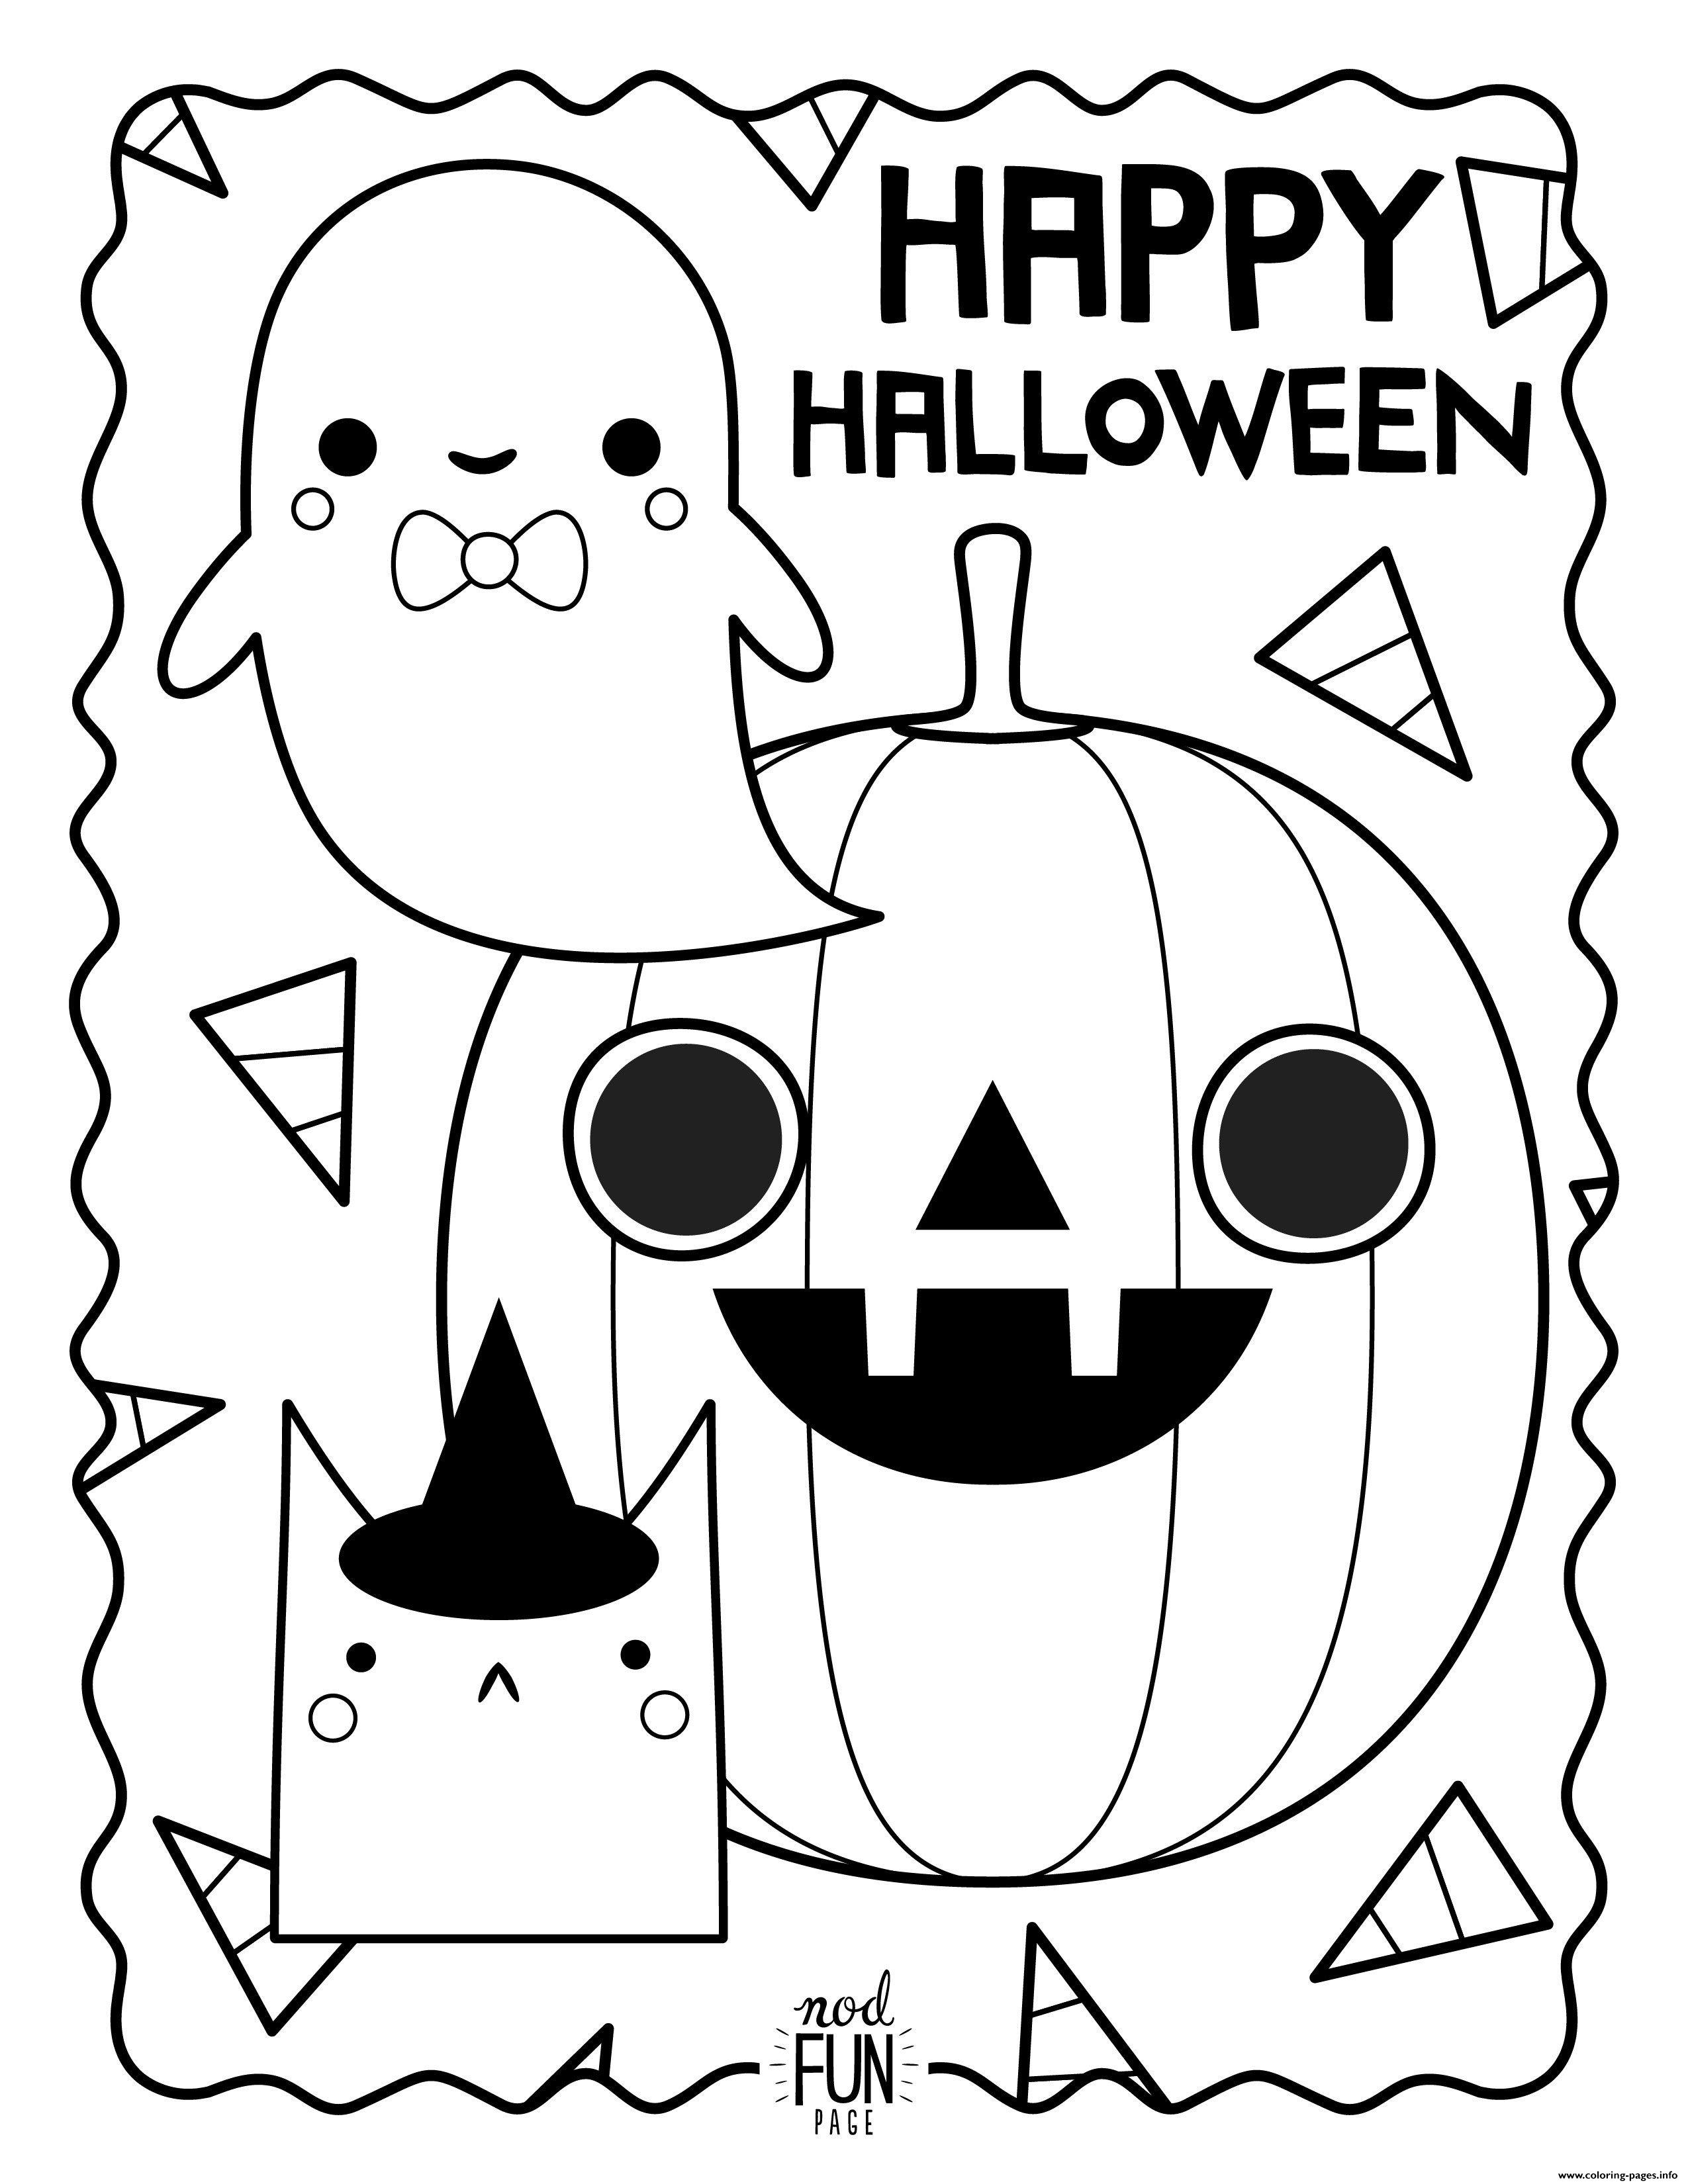 Happy Halloween Ghost Pumpkin Car Coloring Pages Printable